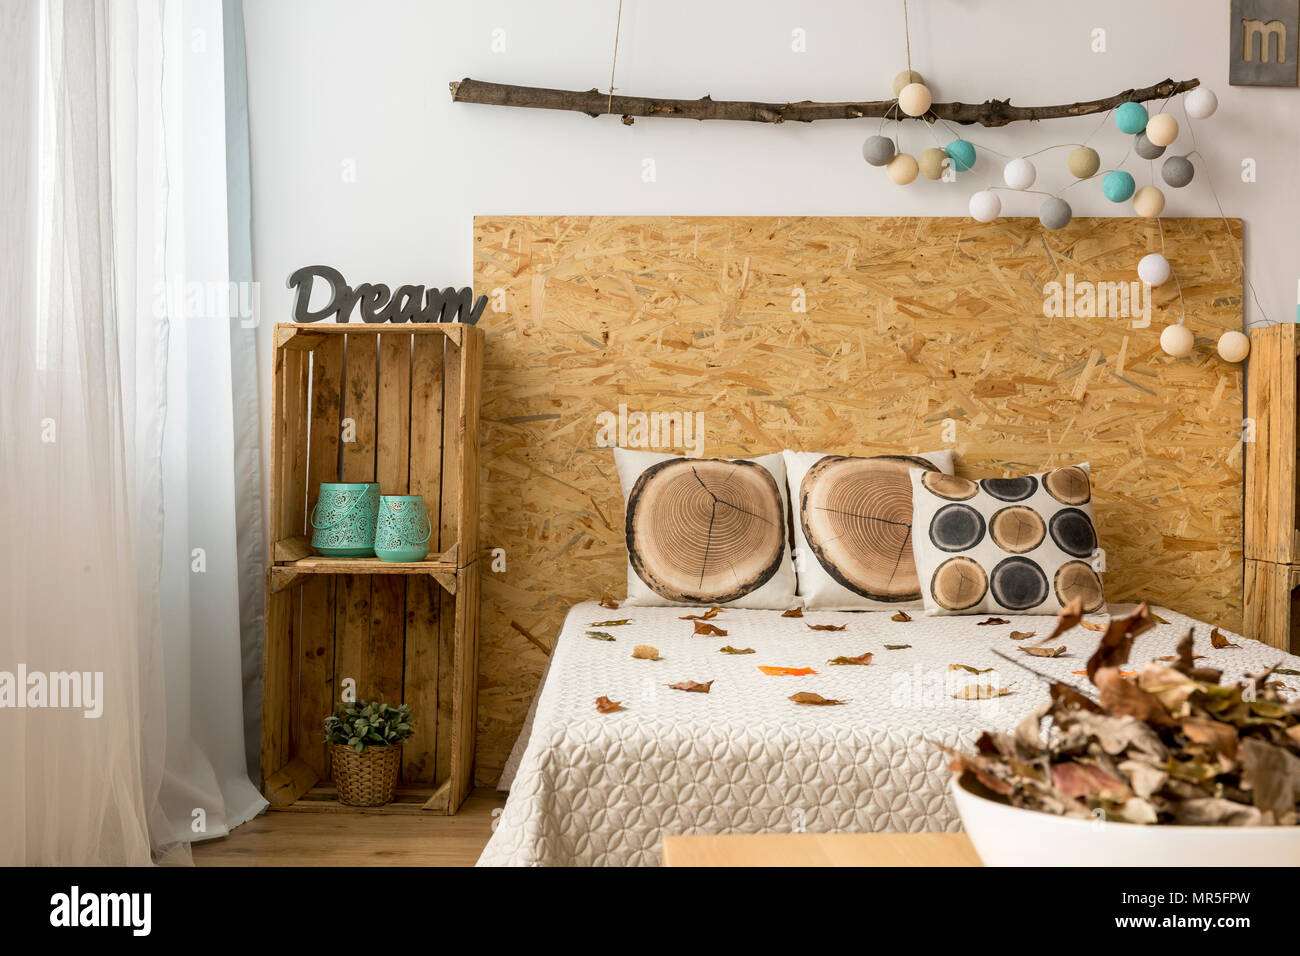 Interior Design Fai Da Te cozy bedroom in autumnal tones with double bed and wooden